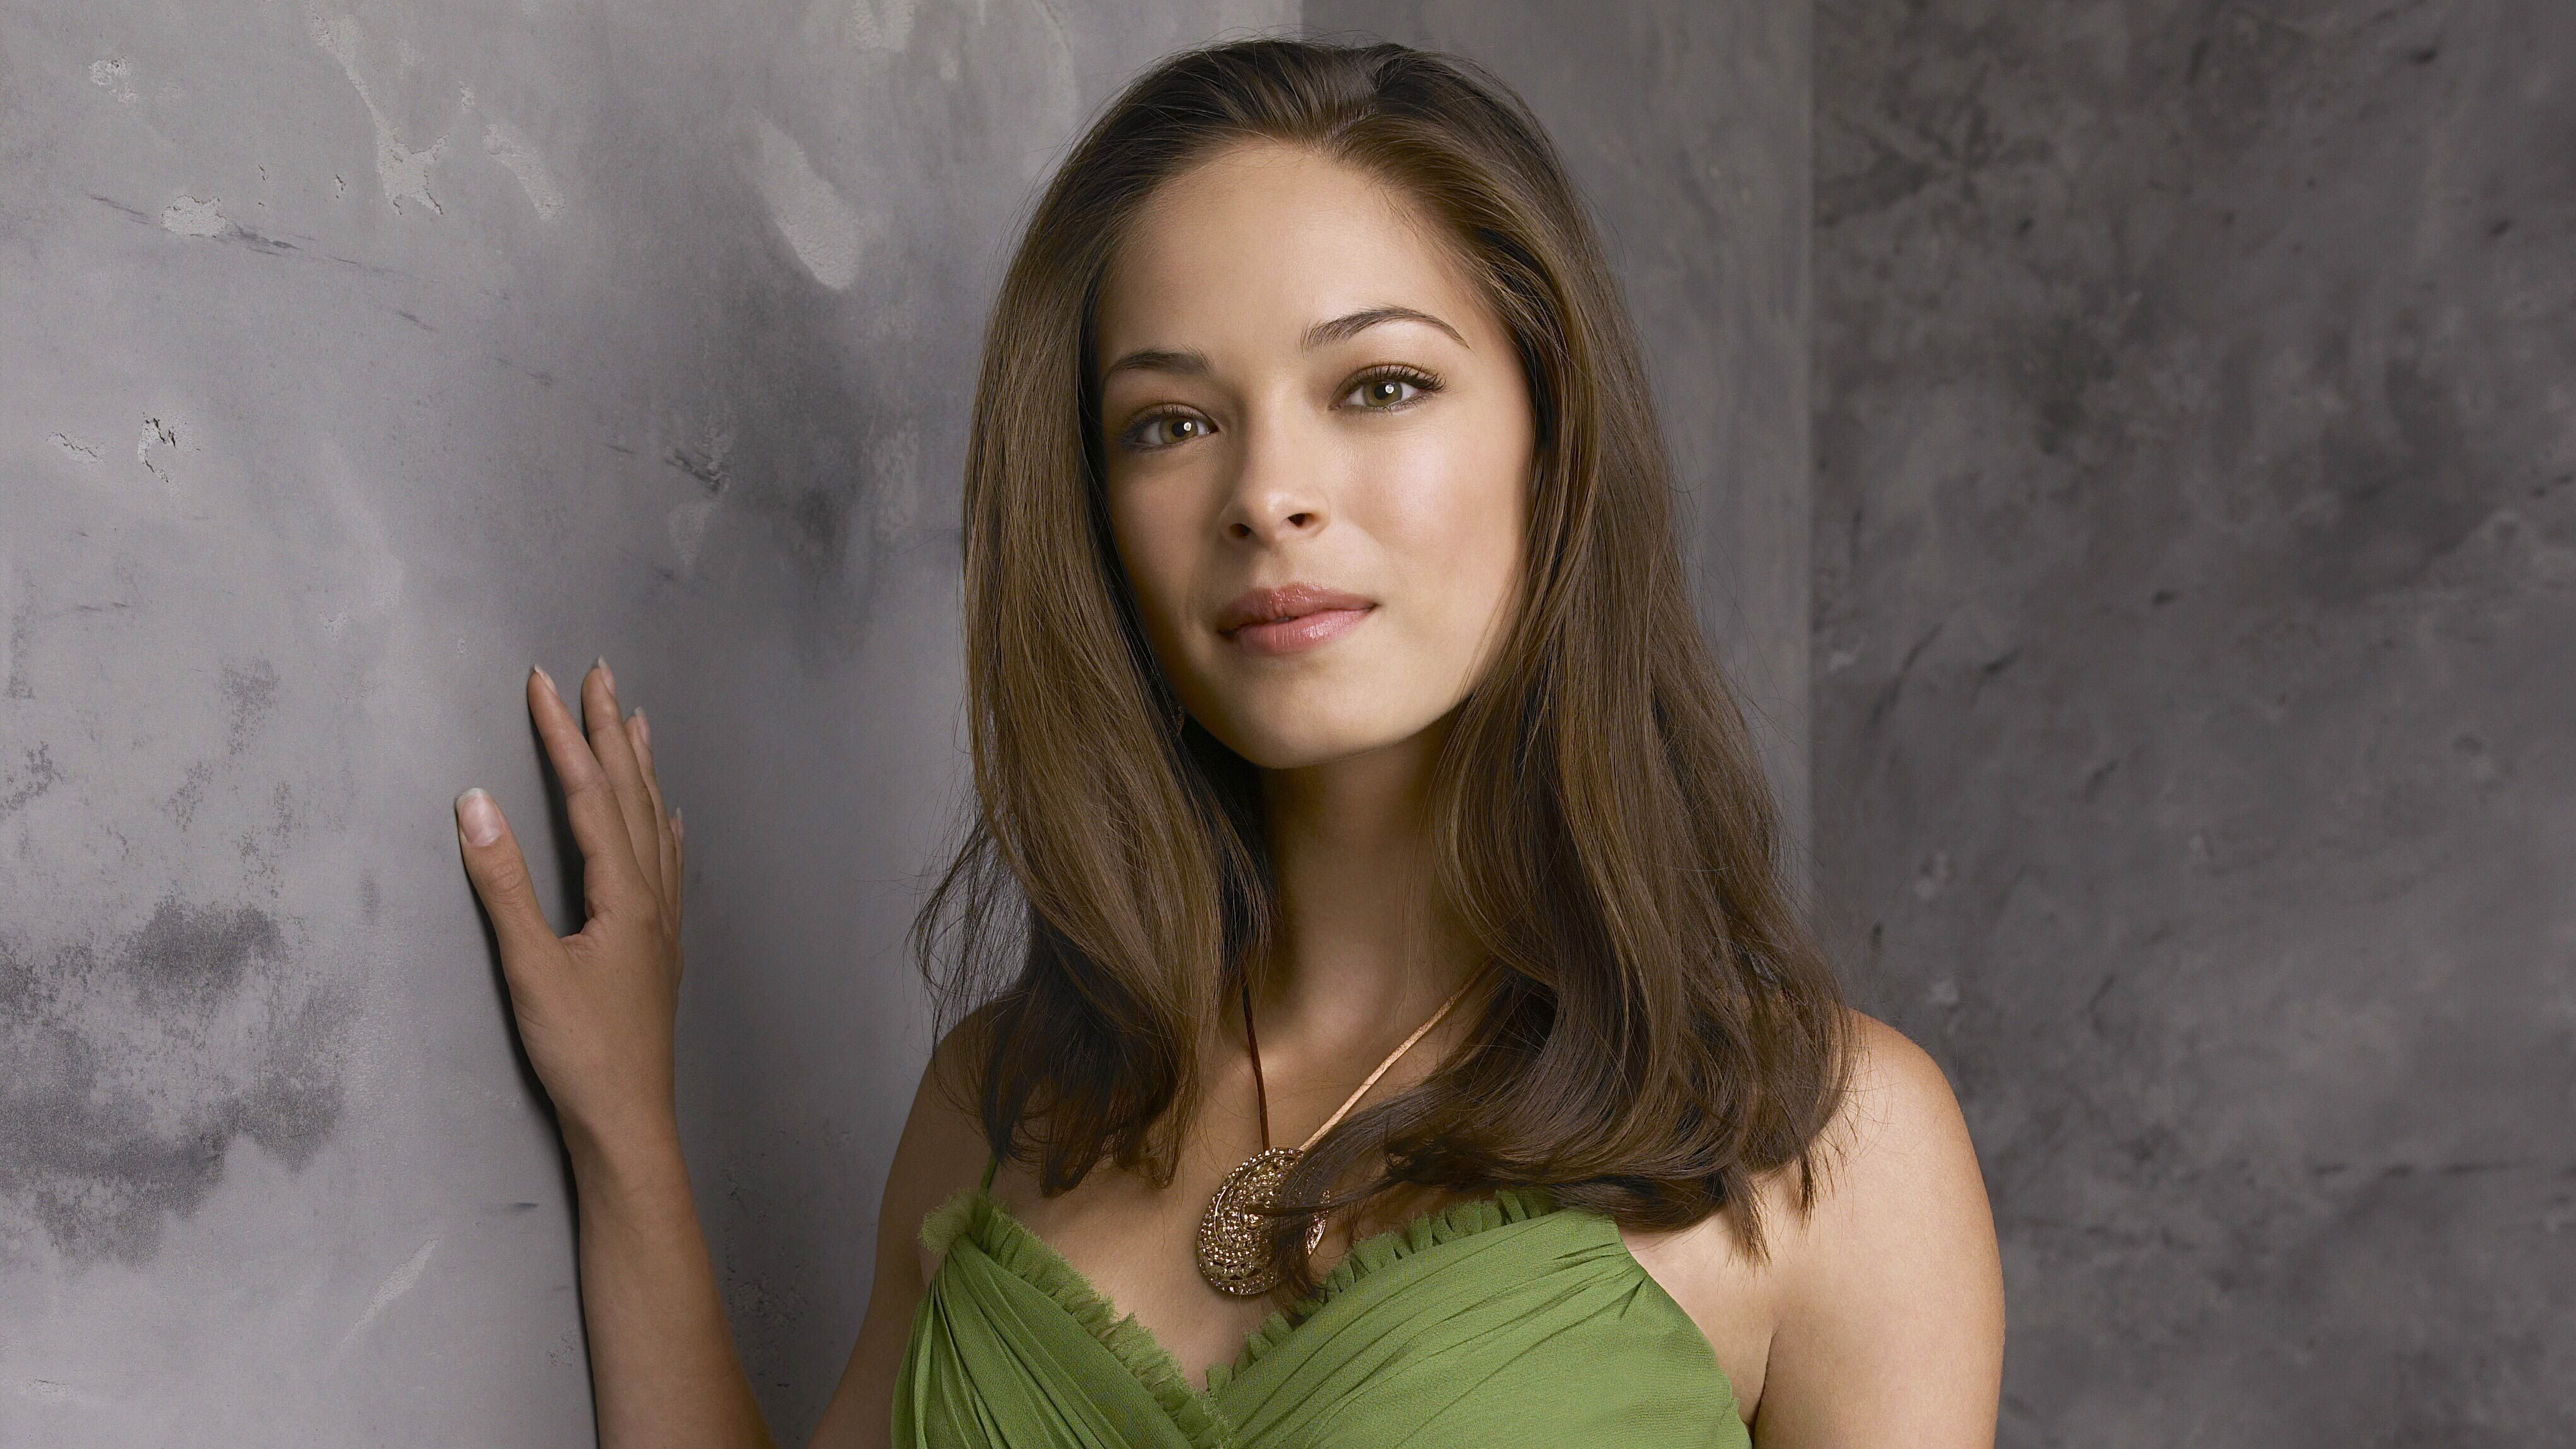 kristin kreuk 2019 1538941872 - Kristin Kreuk 2019 - kristin kreuk wallpapers, hd-wallpapers, girls wallpapers, celebrities wallpapers, 4k-wallpapers